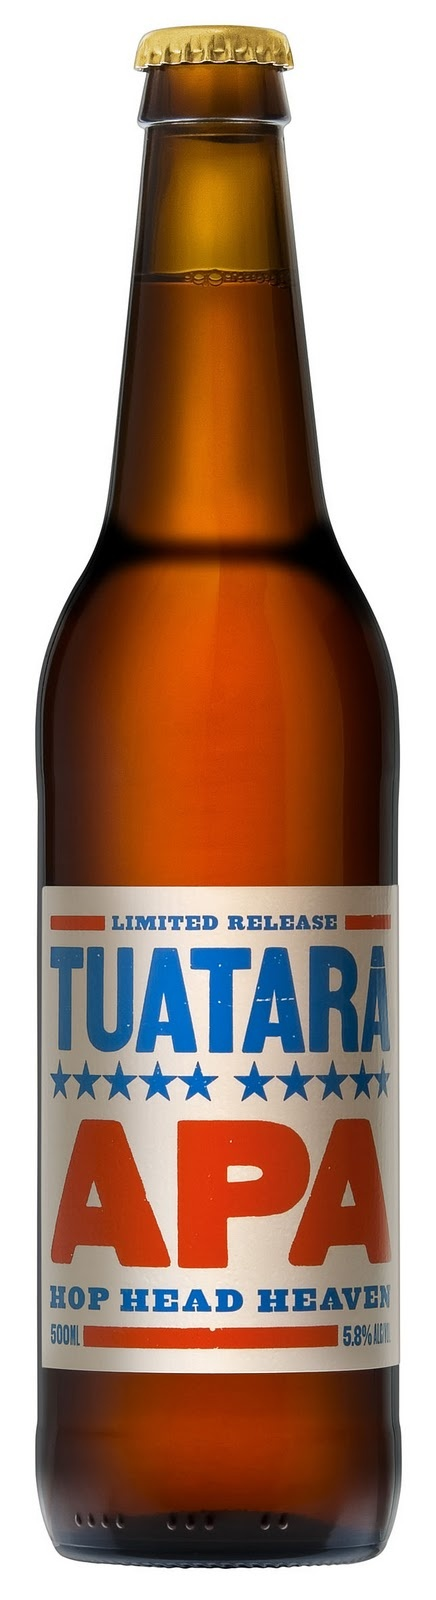 Tuatara APA - Another shining example of how the kiwis know exactly what to do with hops